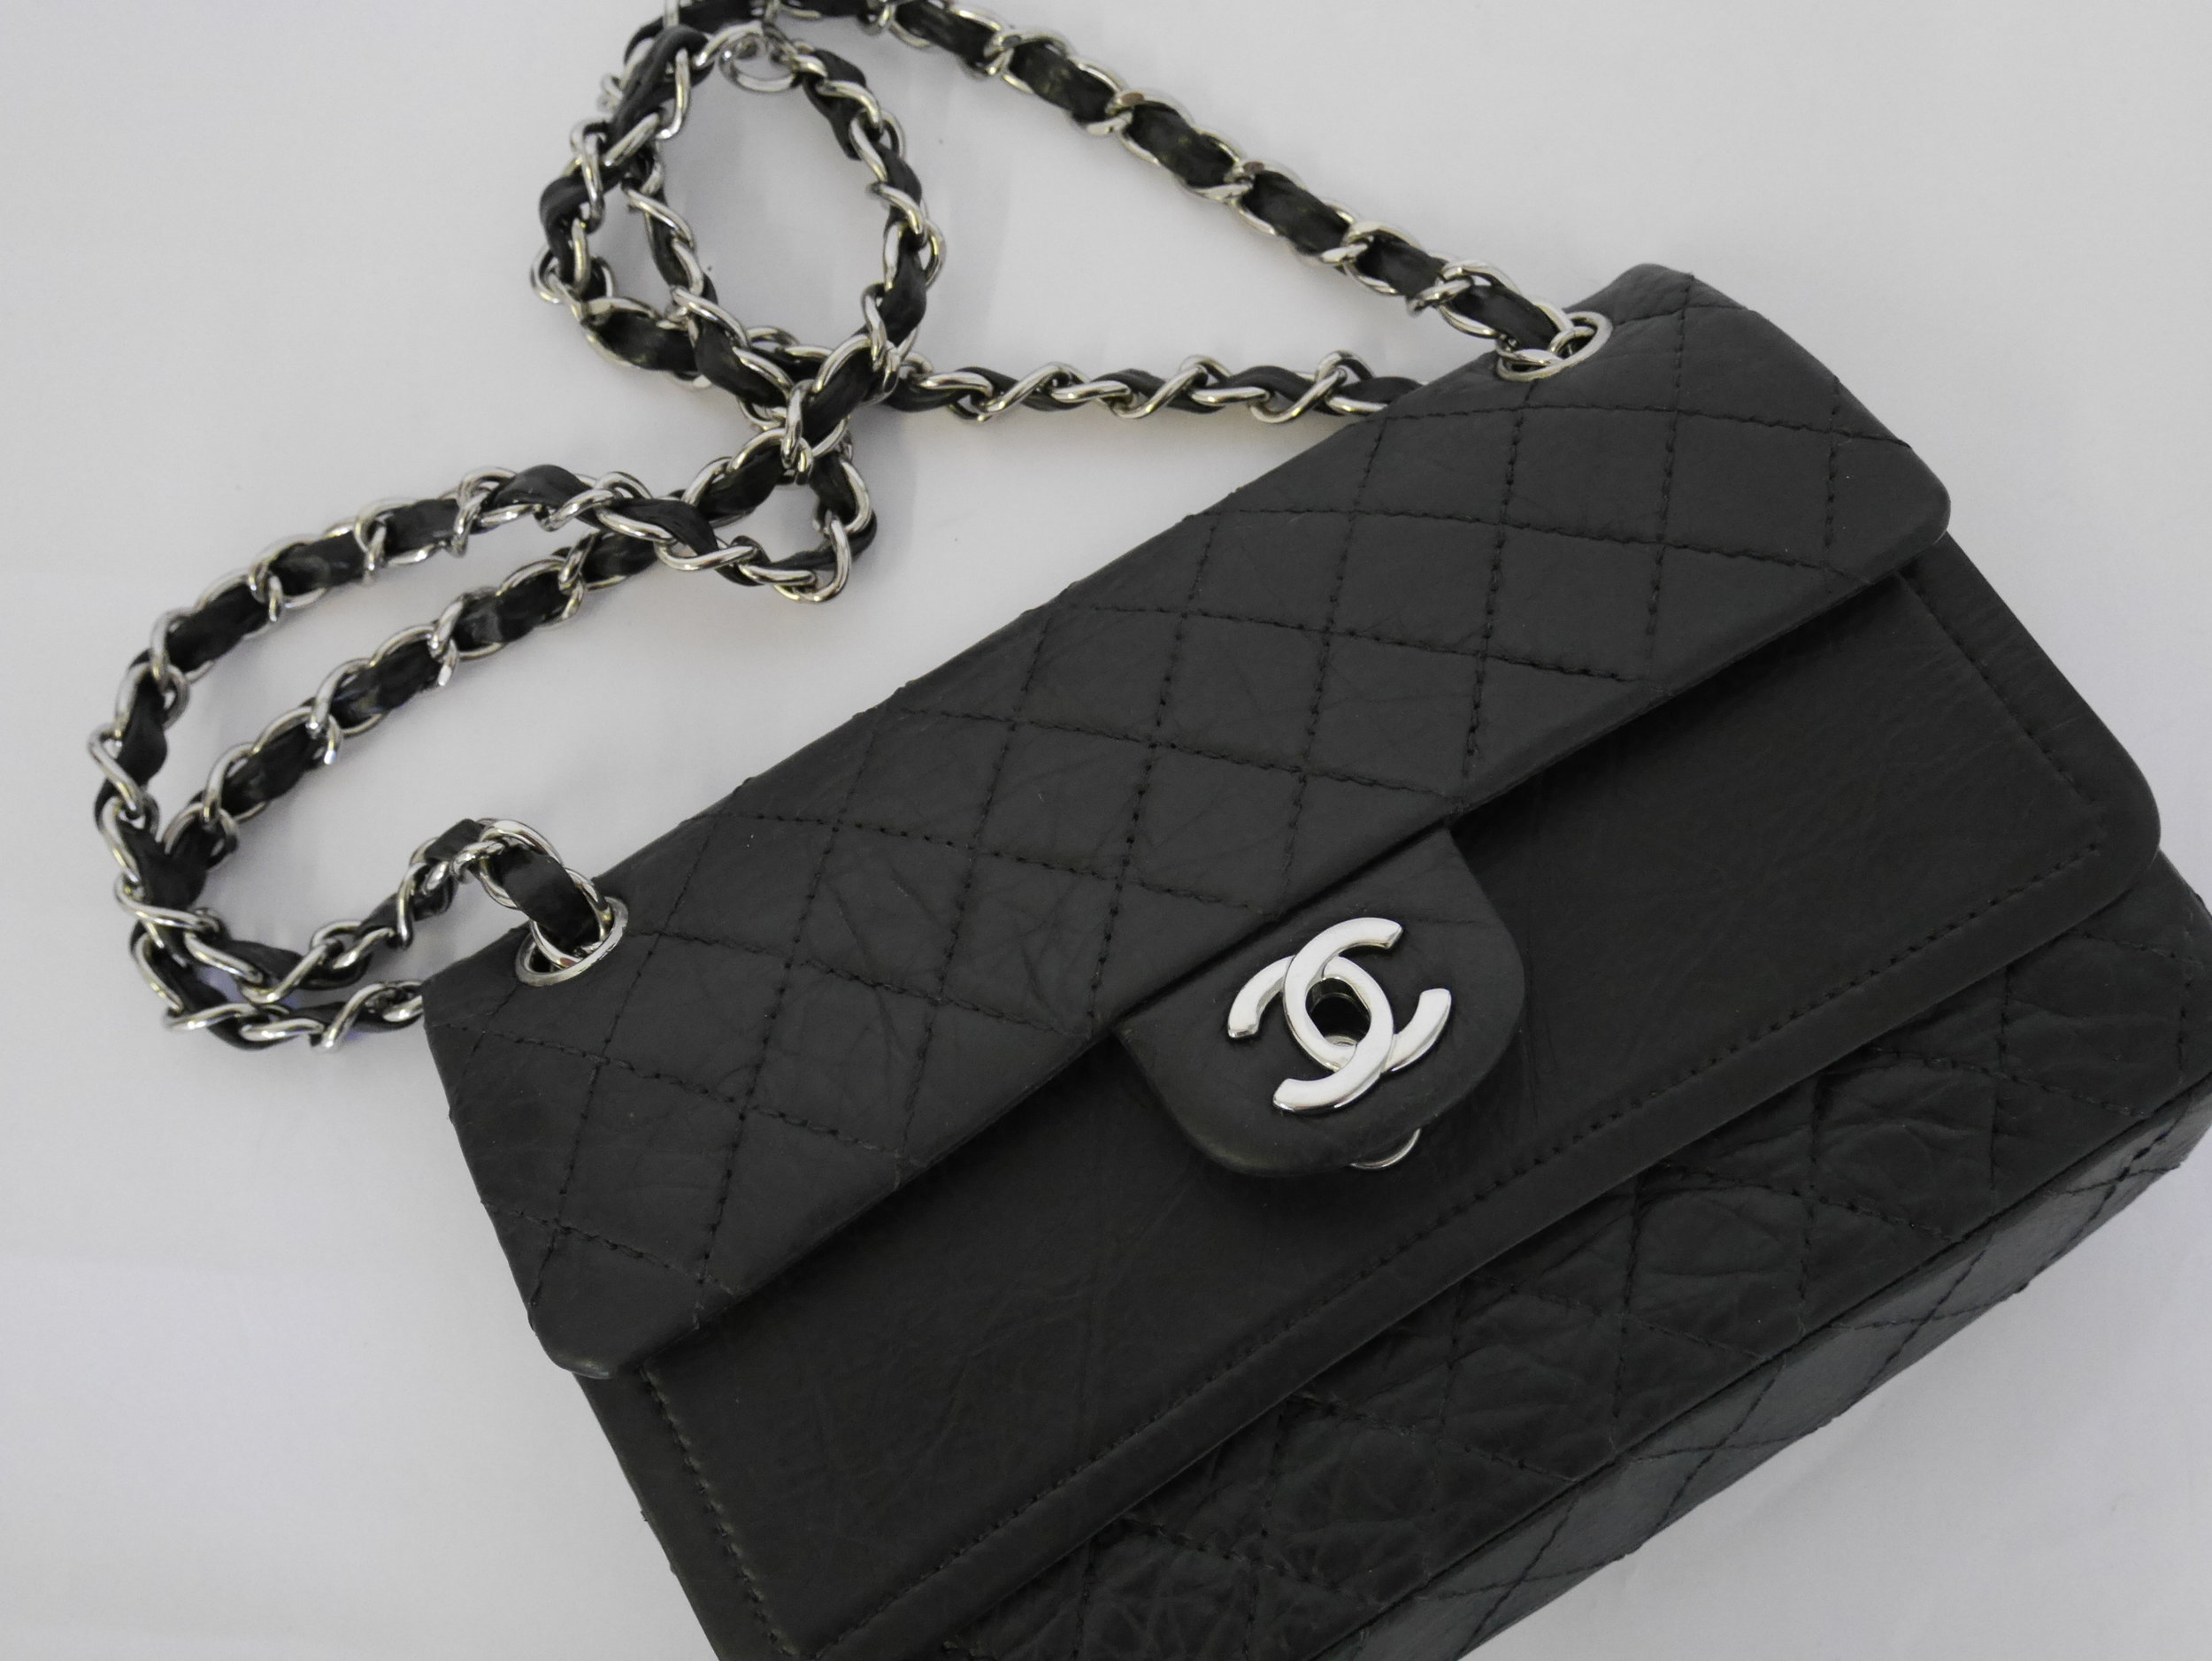 Restored+Chanel+Bag.jpeg